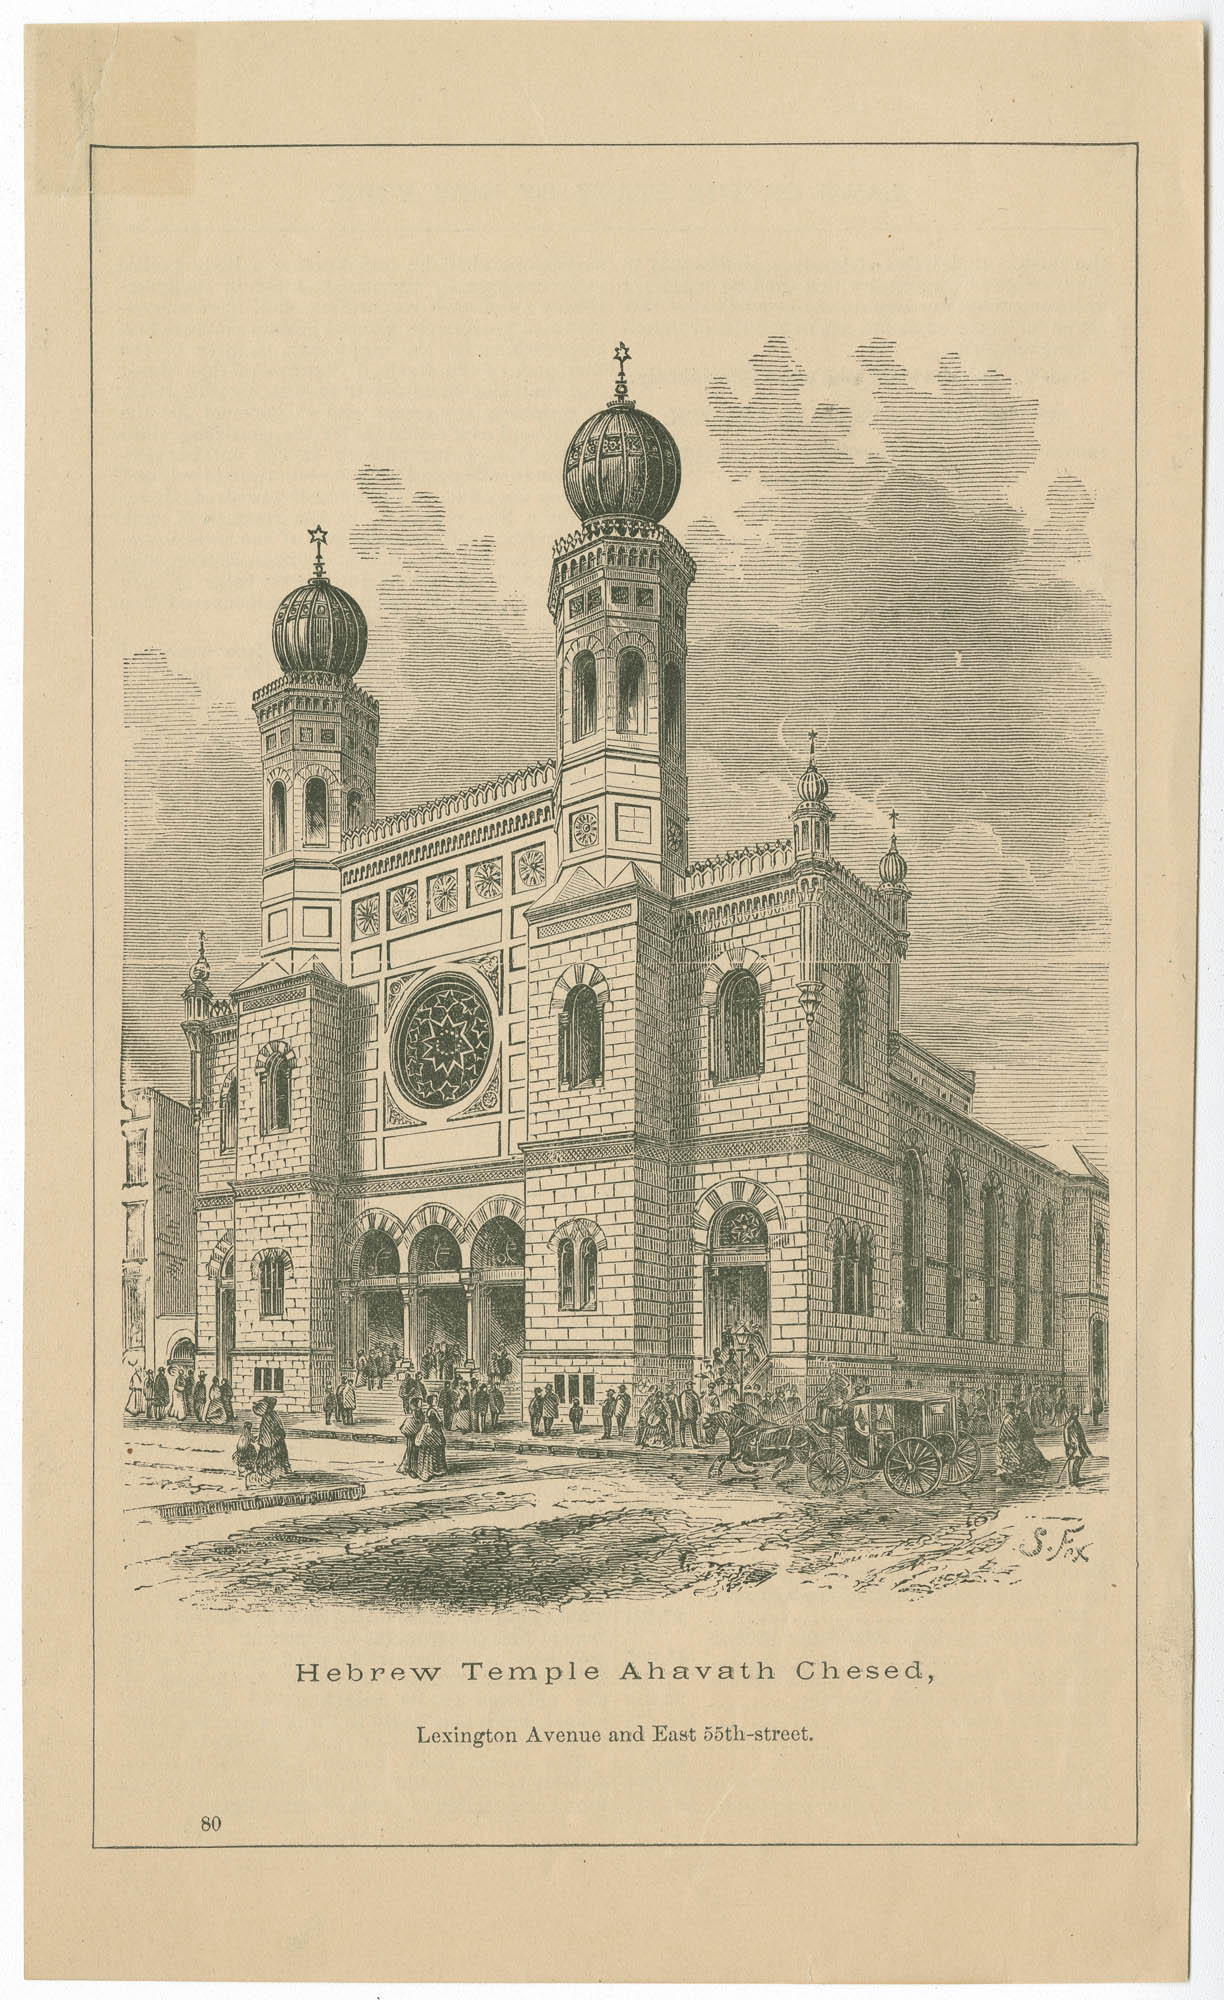 Hebrew Temple Ahavath Chesed, Lexington Avenue and East 55th Street